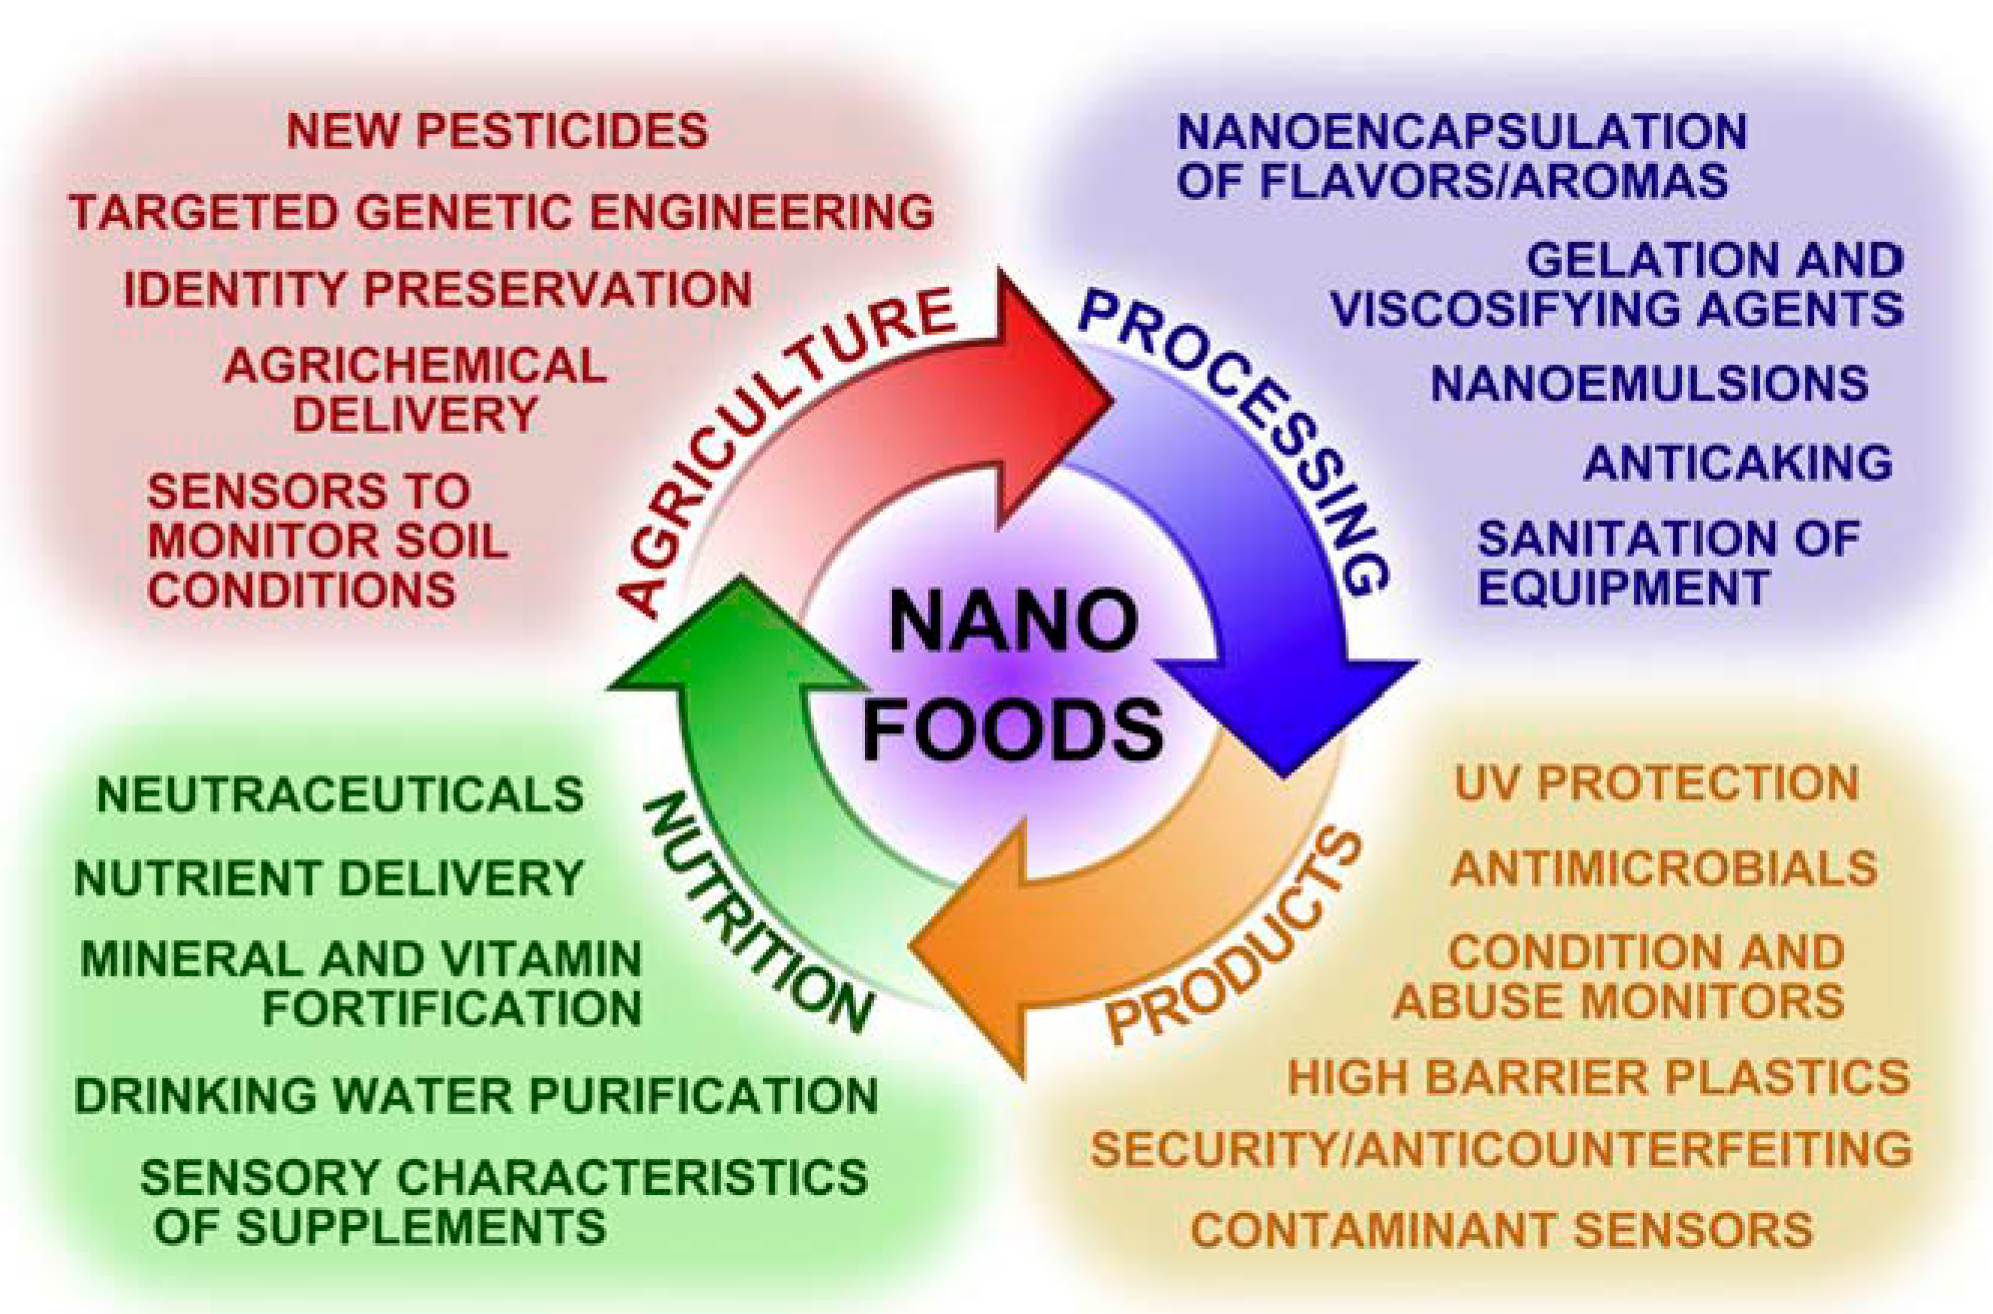 polymers full text a review on potentiality of nano polymers 06 02247 g008 1024